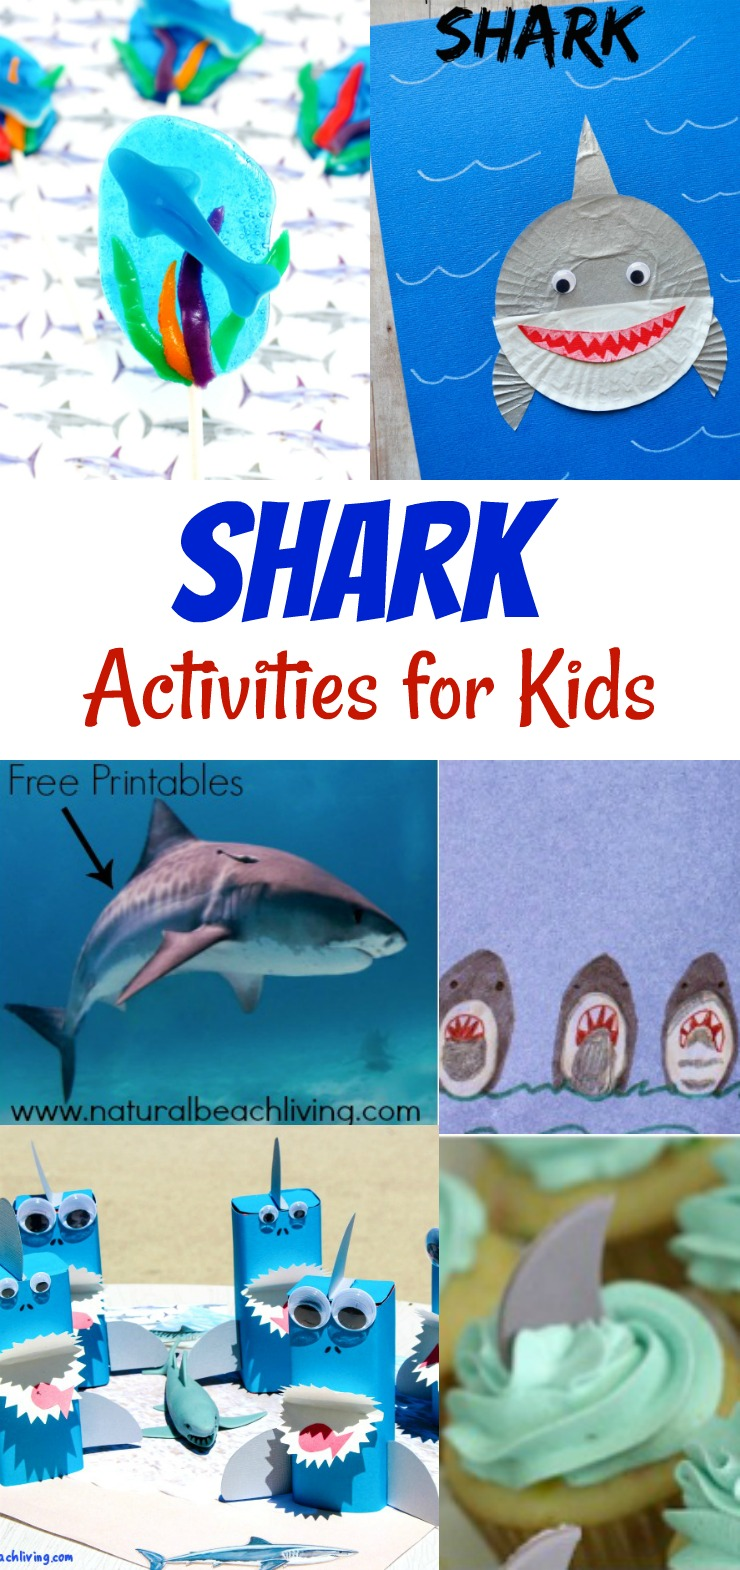 Shark Activities for Kids – Free Shark Printables